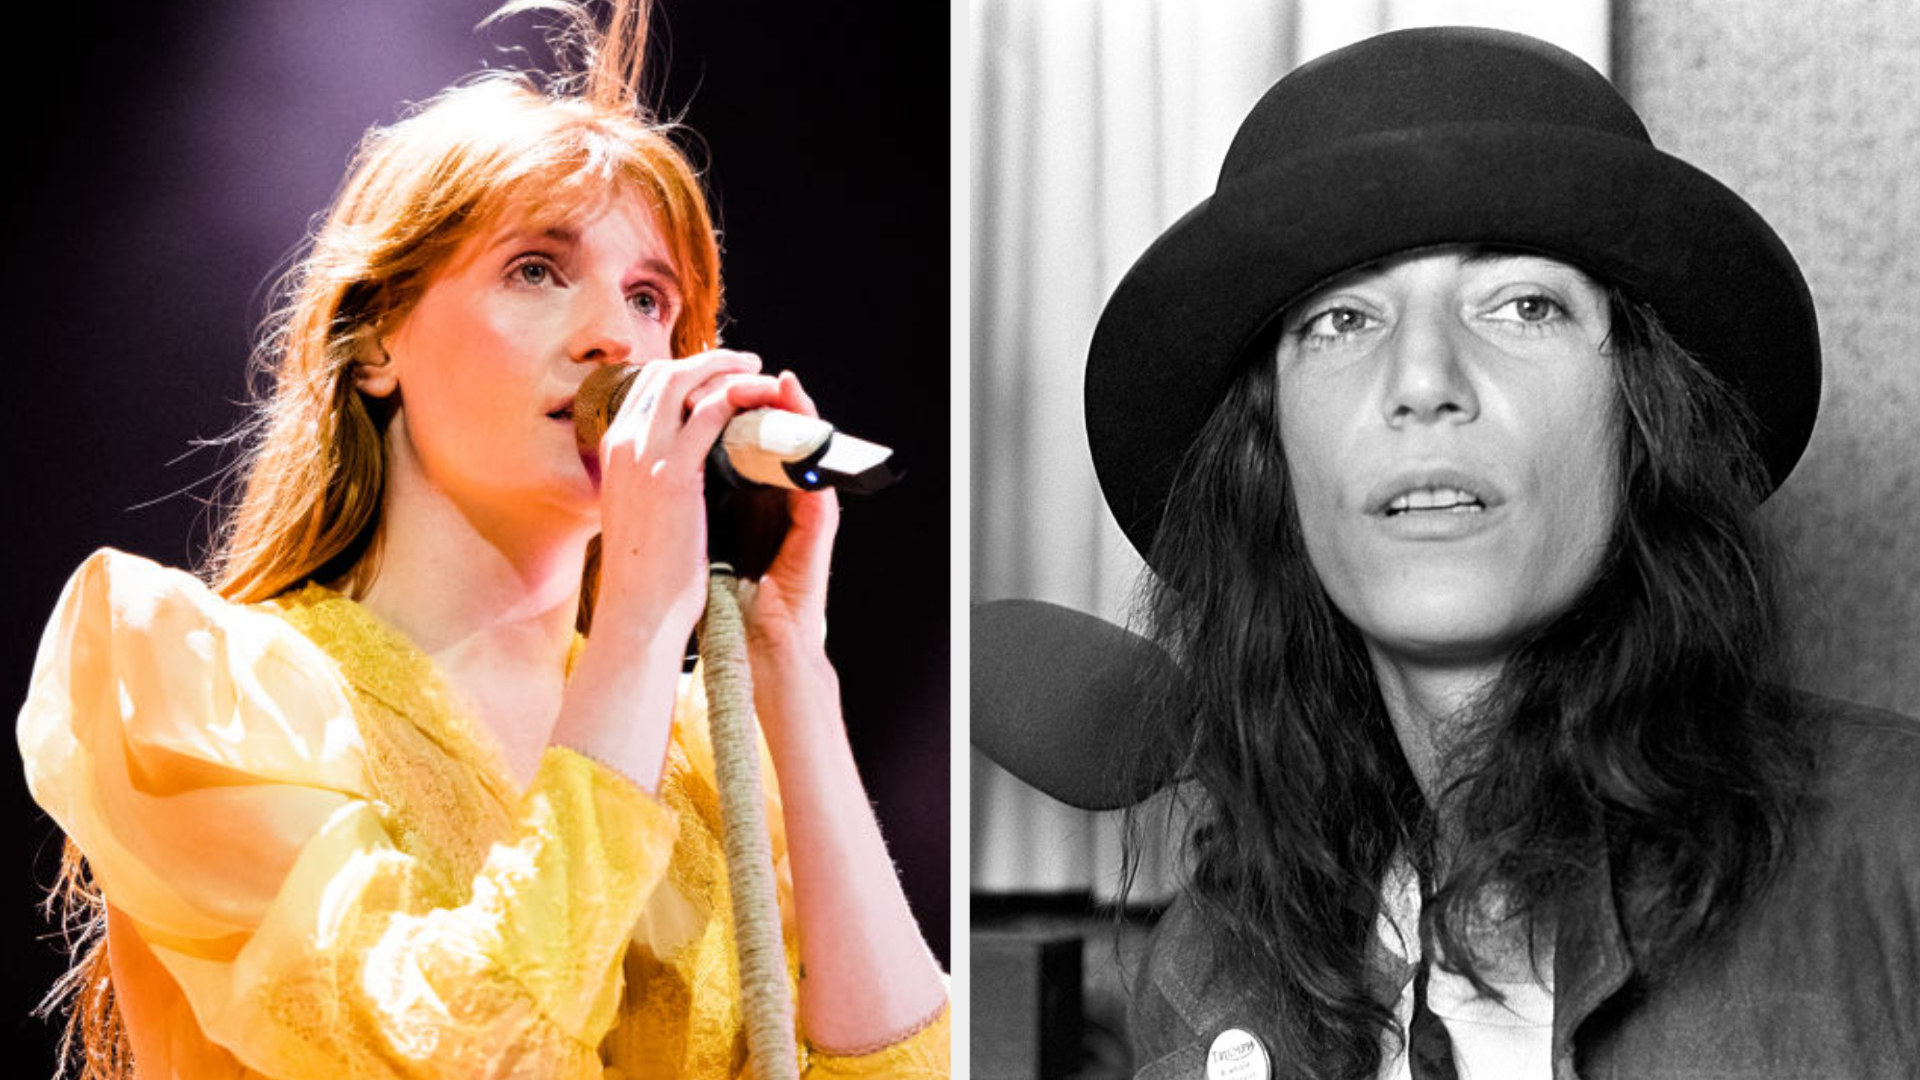 Florence Welch performing live in concert in 2019; Patti Smith wearing a hat while being interviewed on a radio show in the late '70s